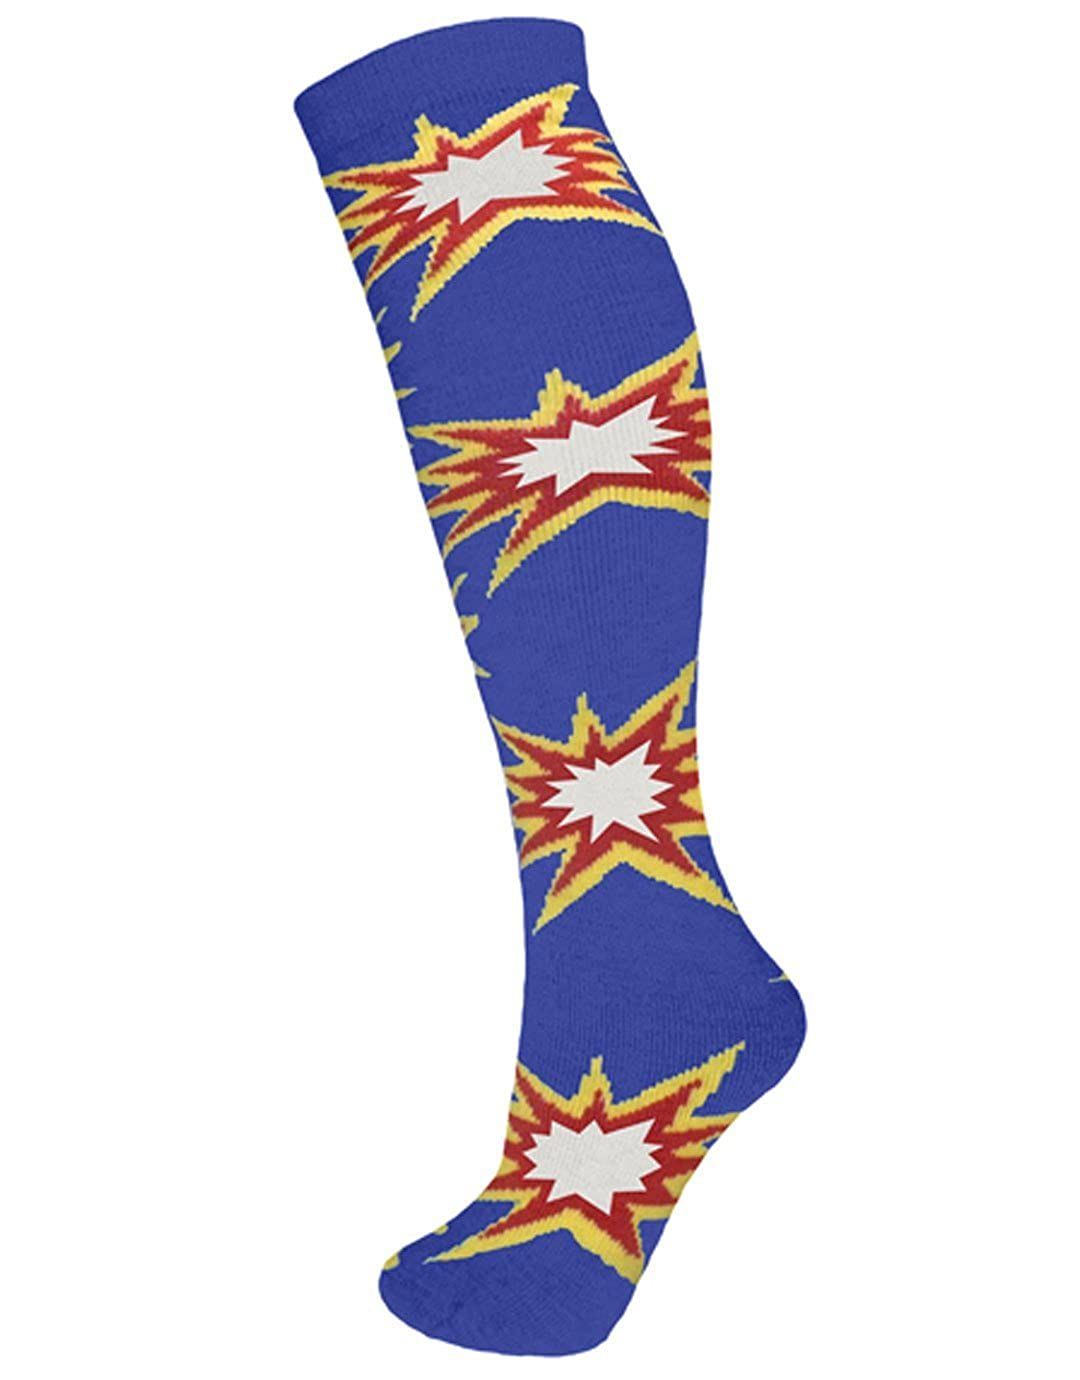 Manbi 18in Kids Patterned Tube Sock KAPOW BLUE 12.5-3.5